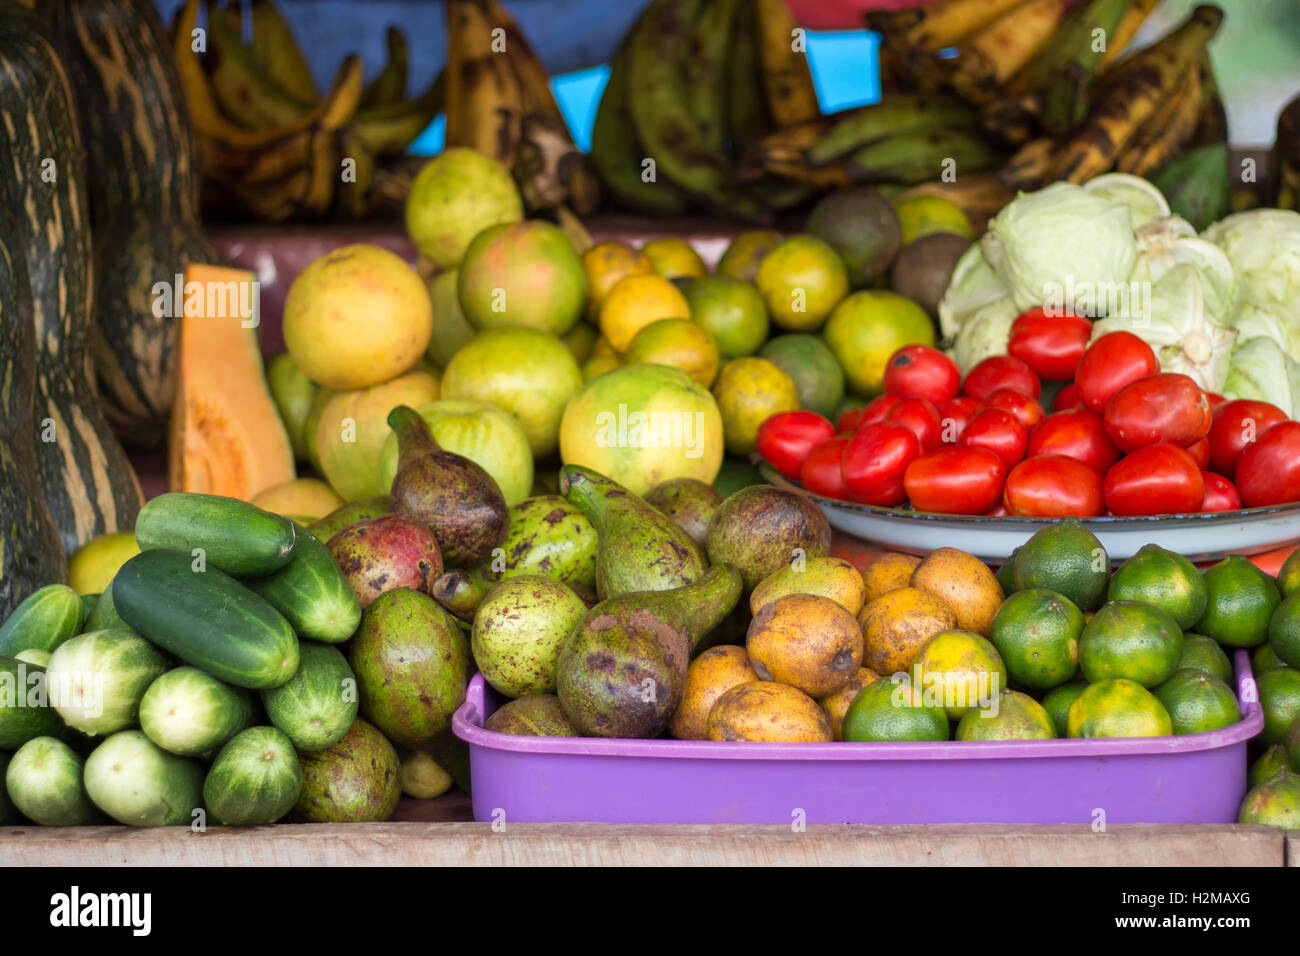 Colorful fruits and vegetables for sale in a Liberian marker, straight from the farm. - Stock Image